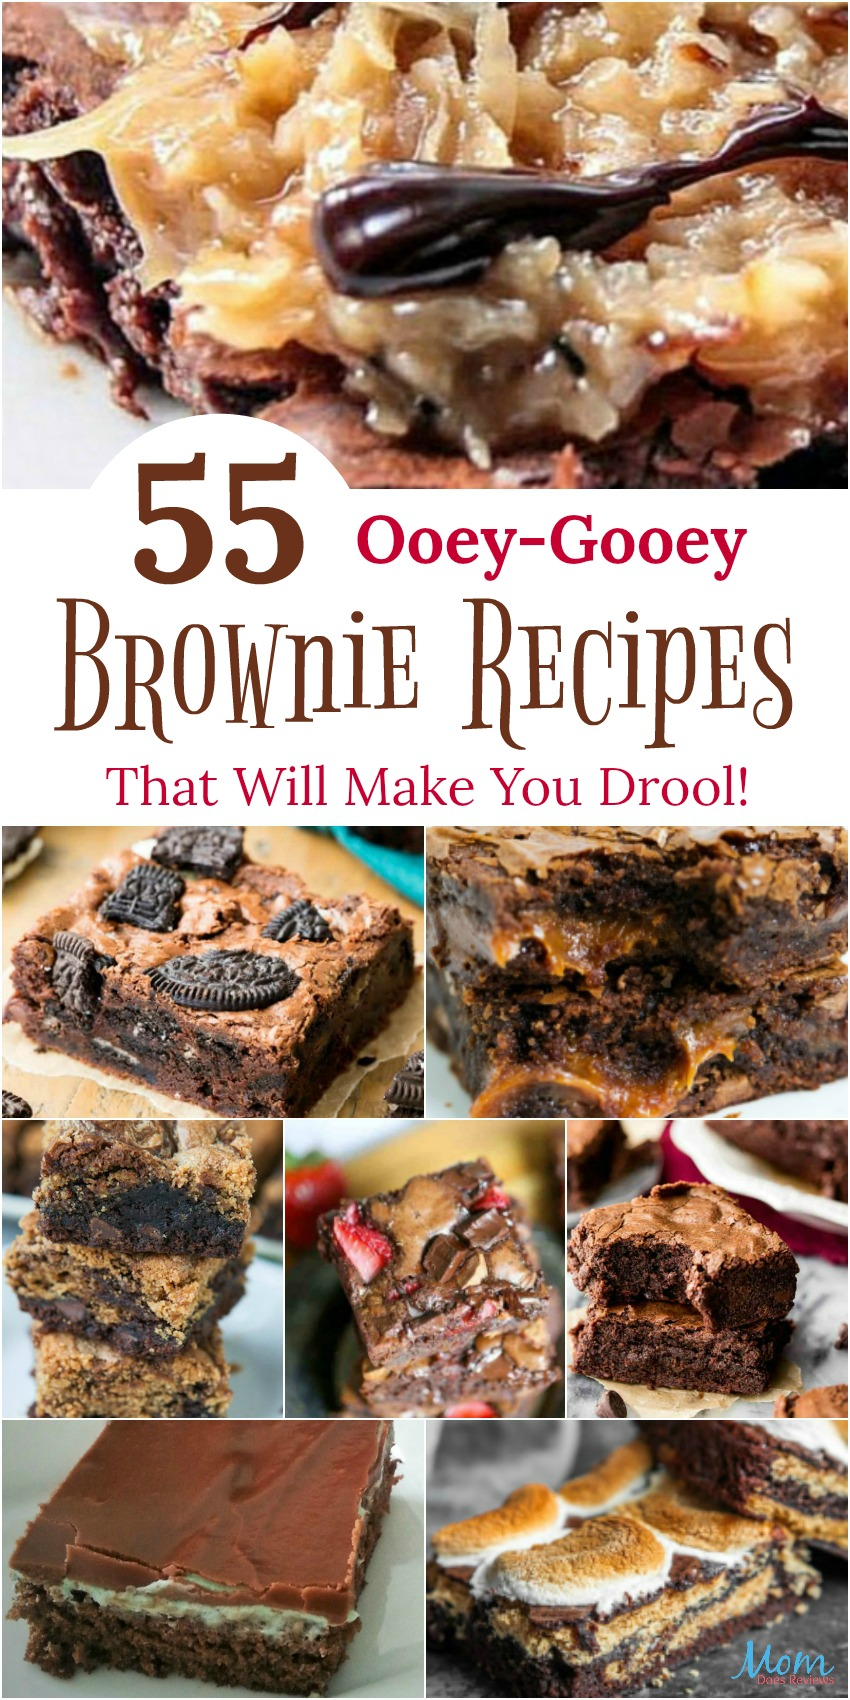 55 Ooey-Gooey Brownie Recipes That Will Make You Drool